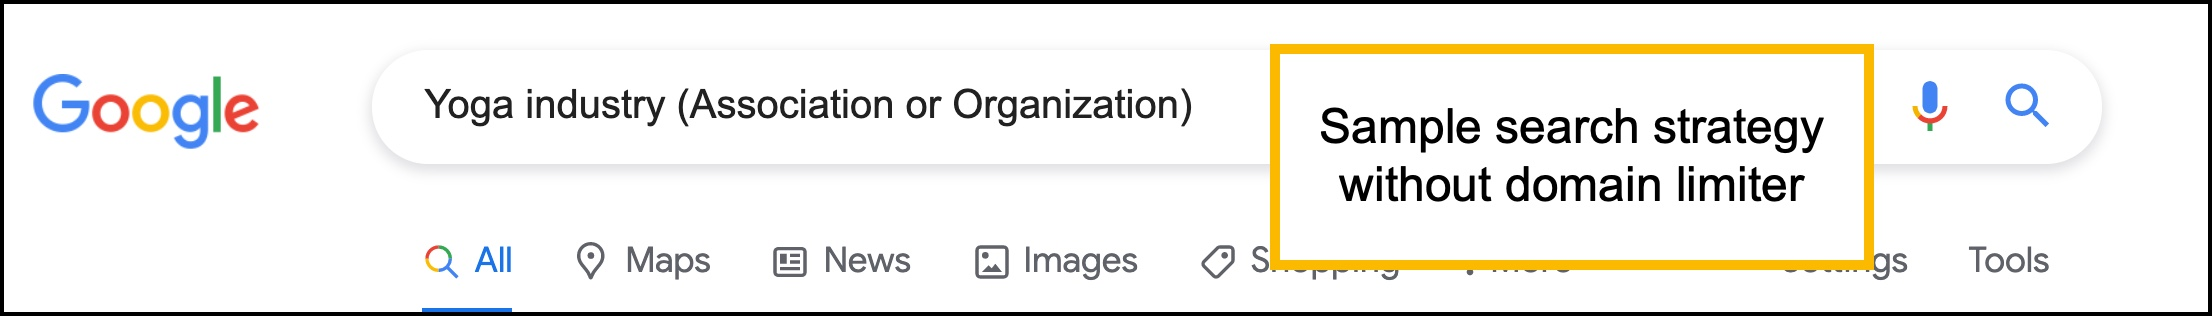 Google search strategy for an association or organization